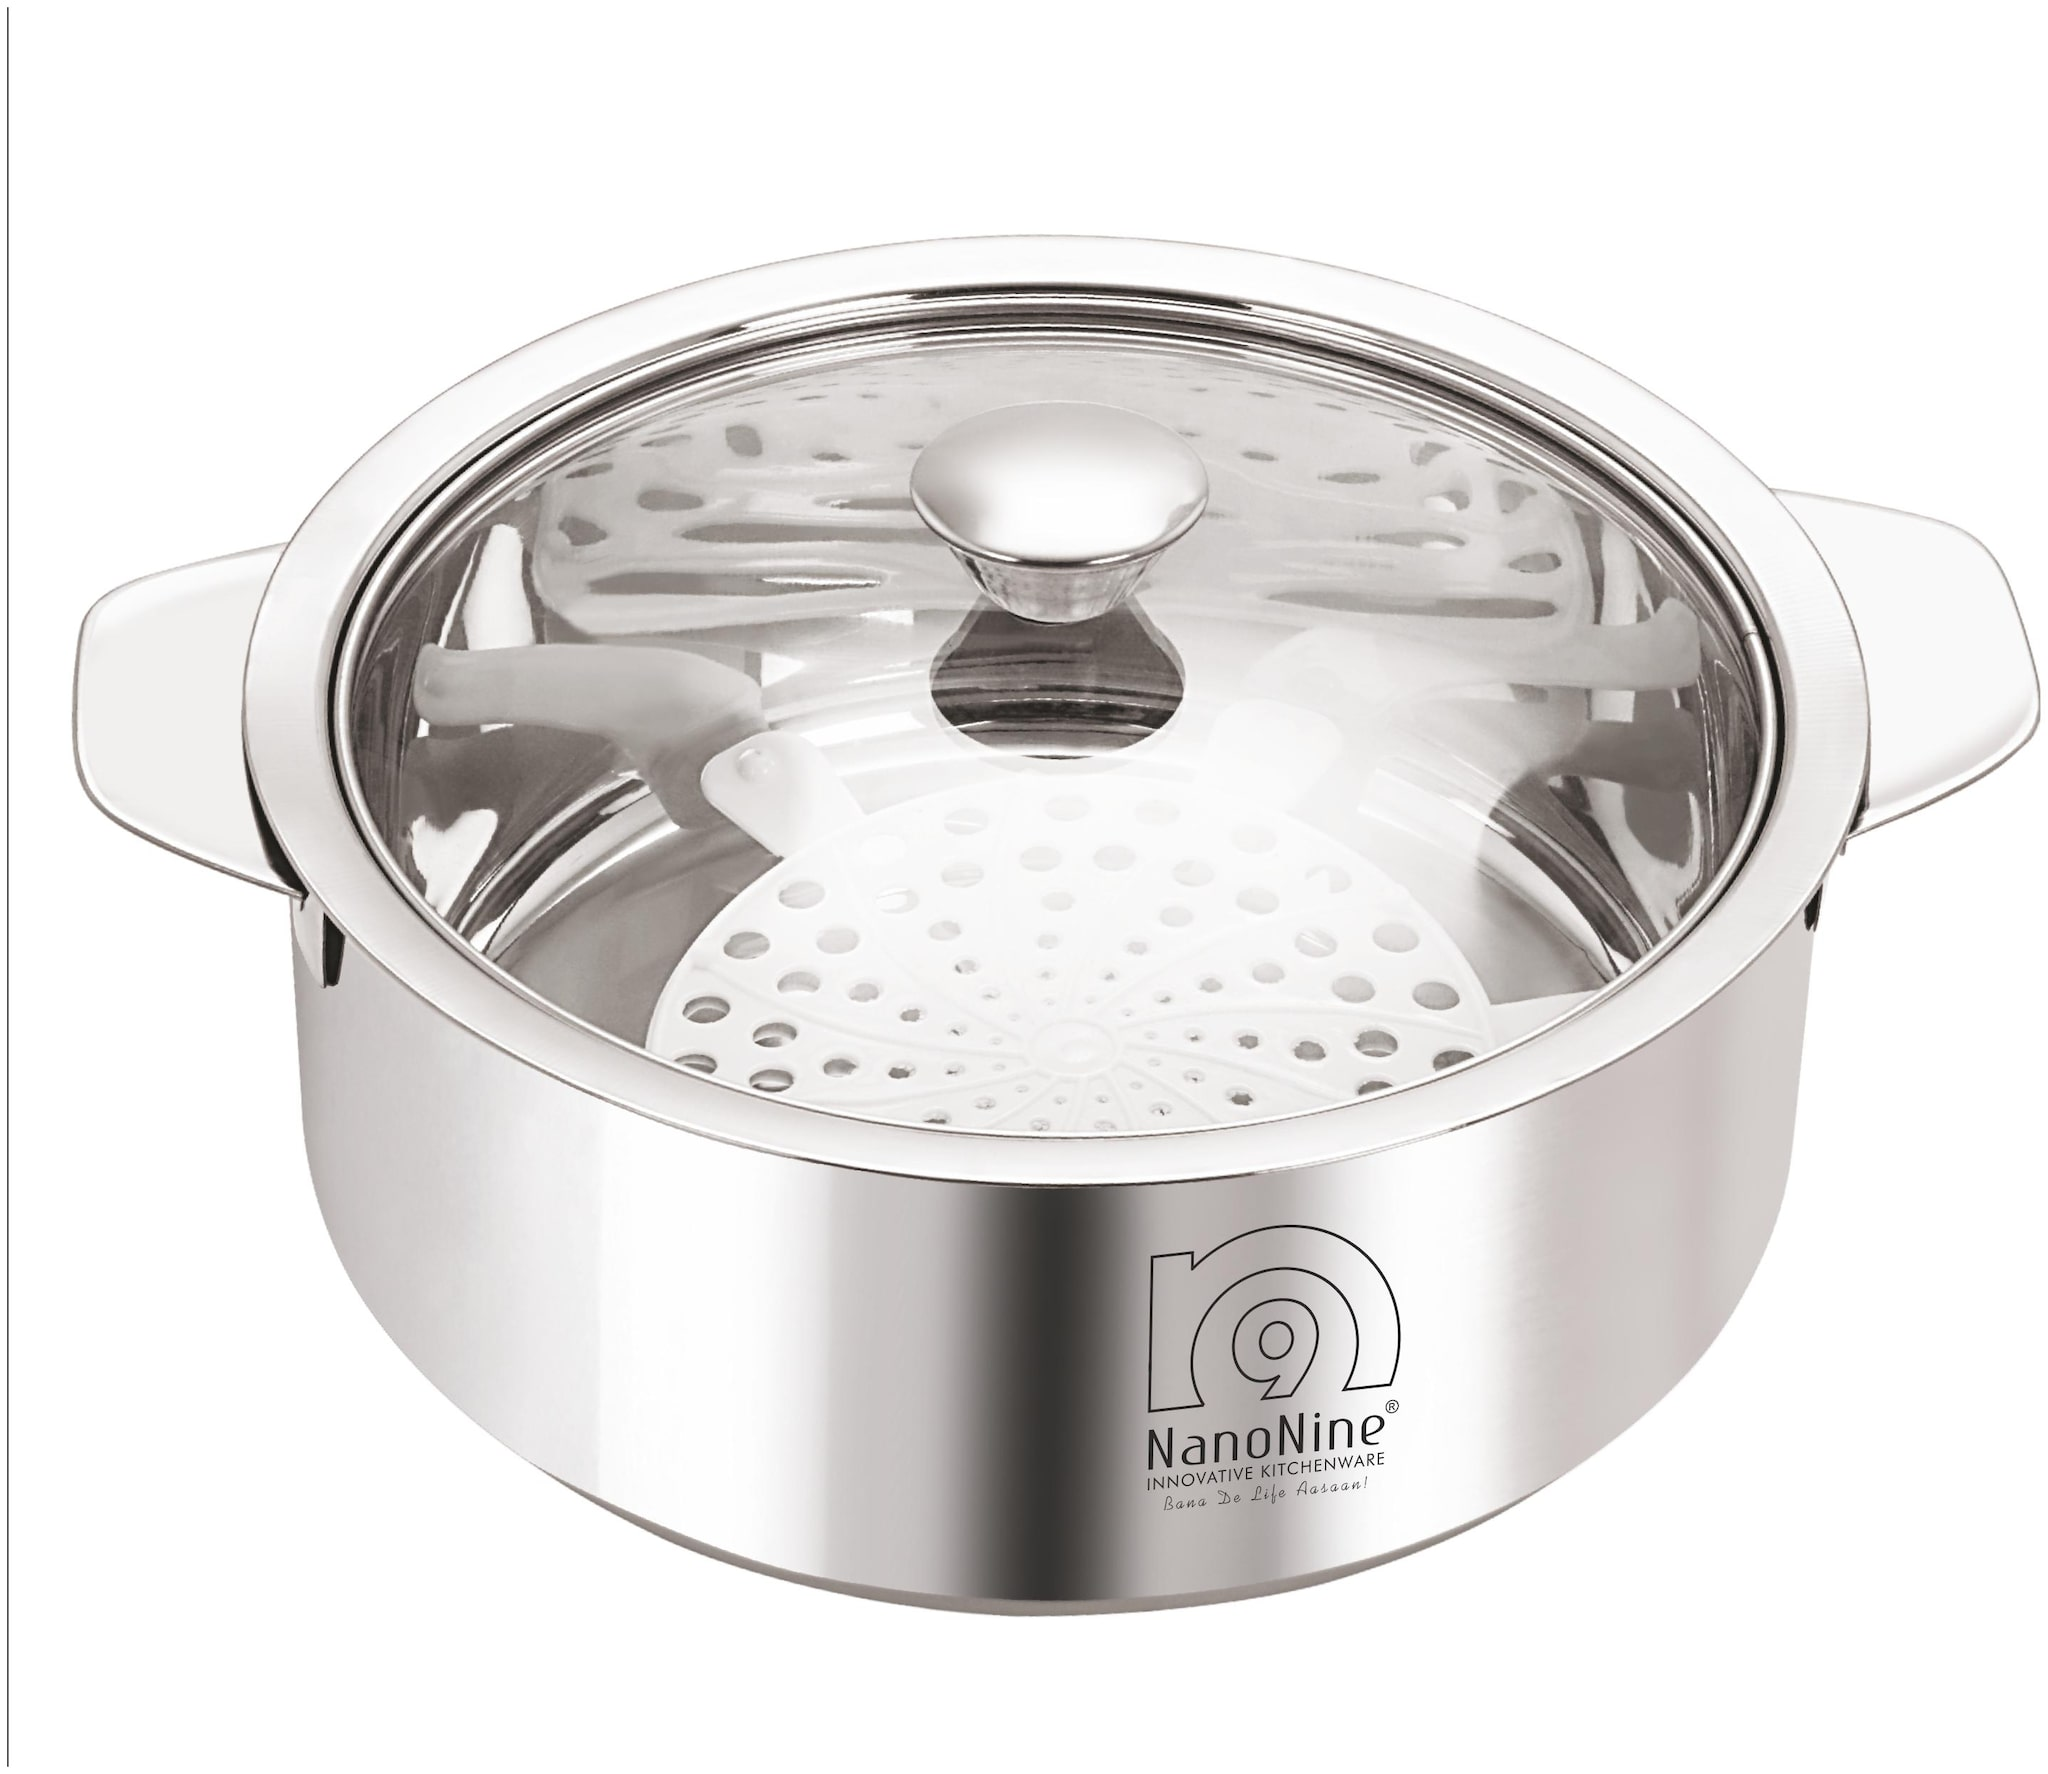 NanoNine Roti Saver Stainless Steel Chapati Pot With Glass Lid, Medium, 2550 ml, Silver by Smart Kitchen